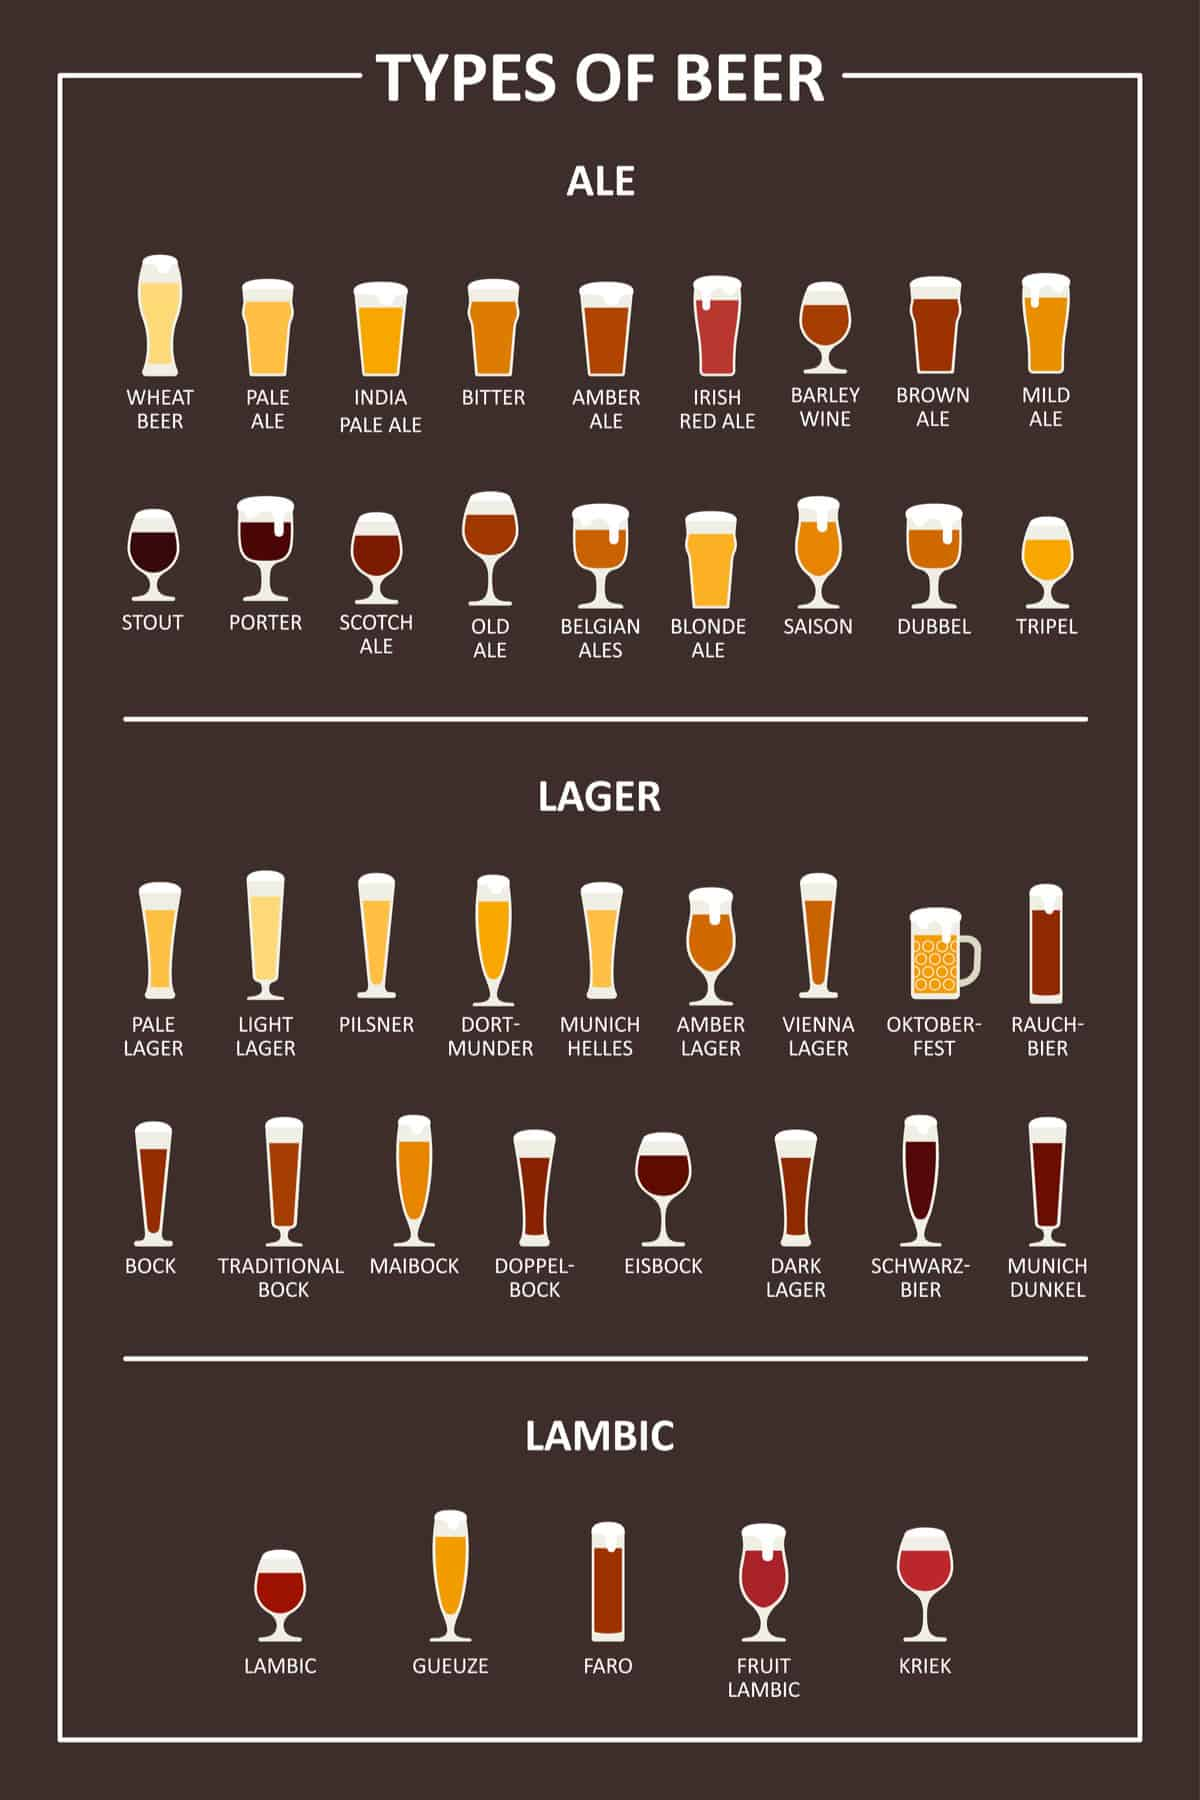 Types of beer chart